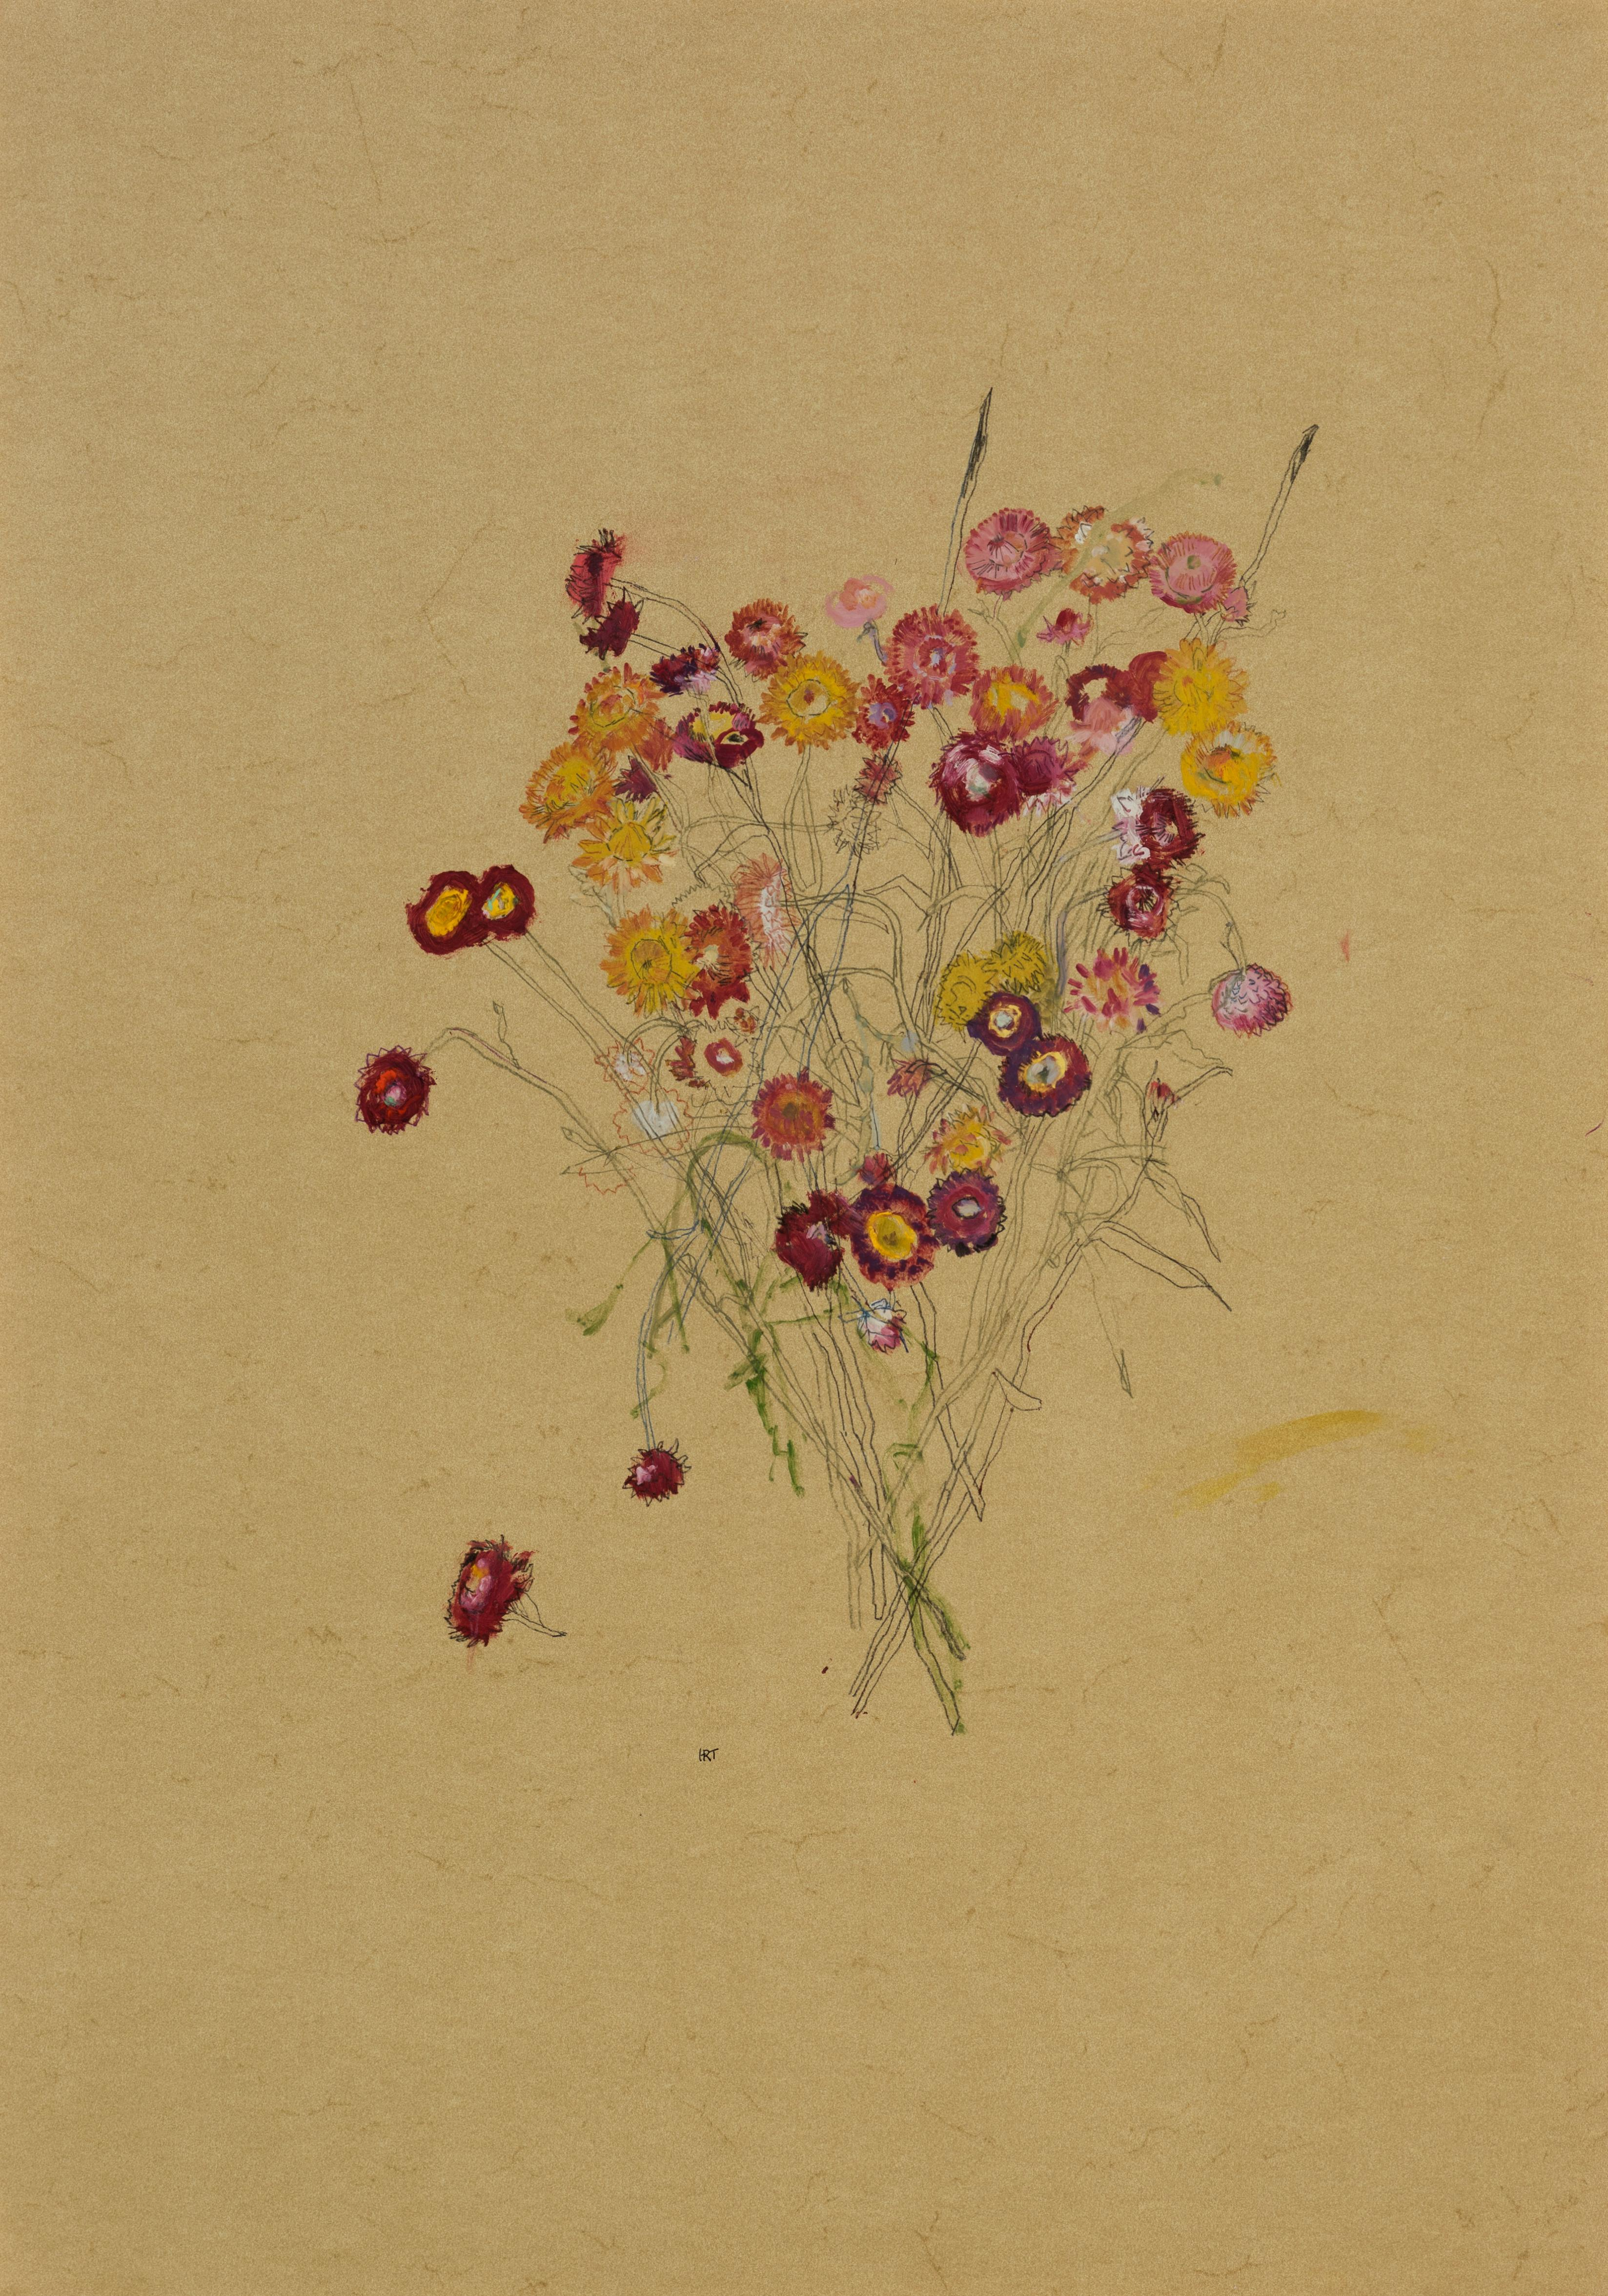 Flowers (Helichrysum), Mixed media on ochre parchment